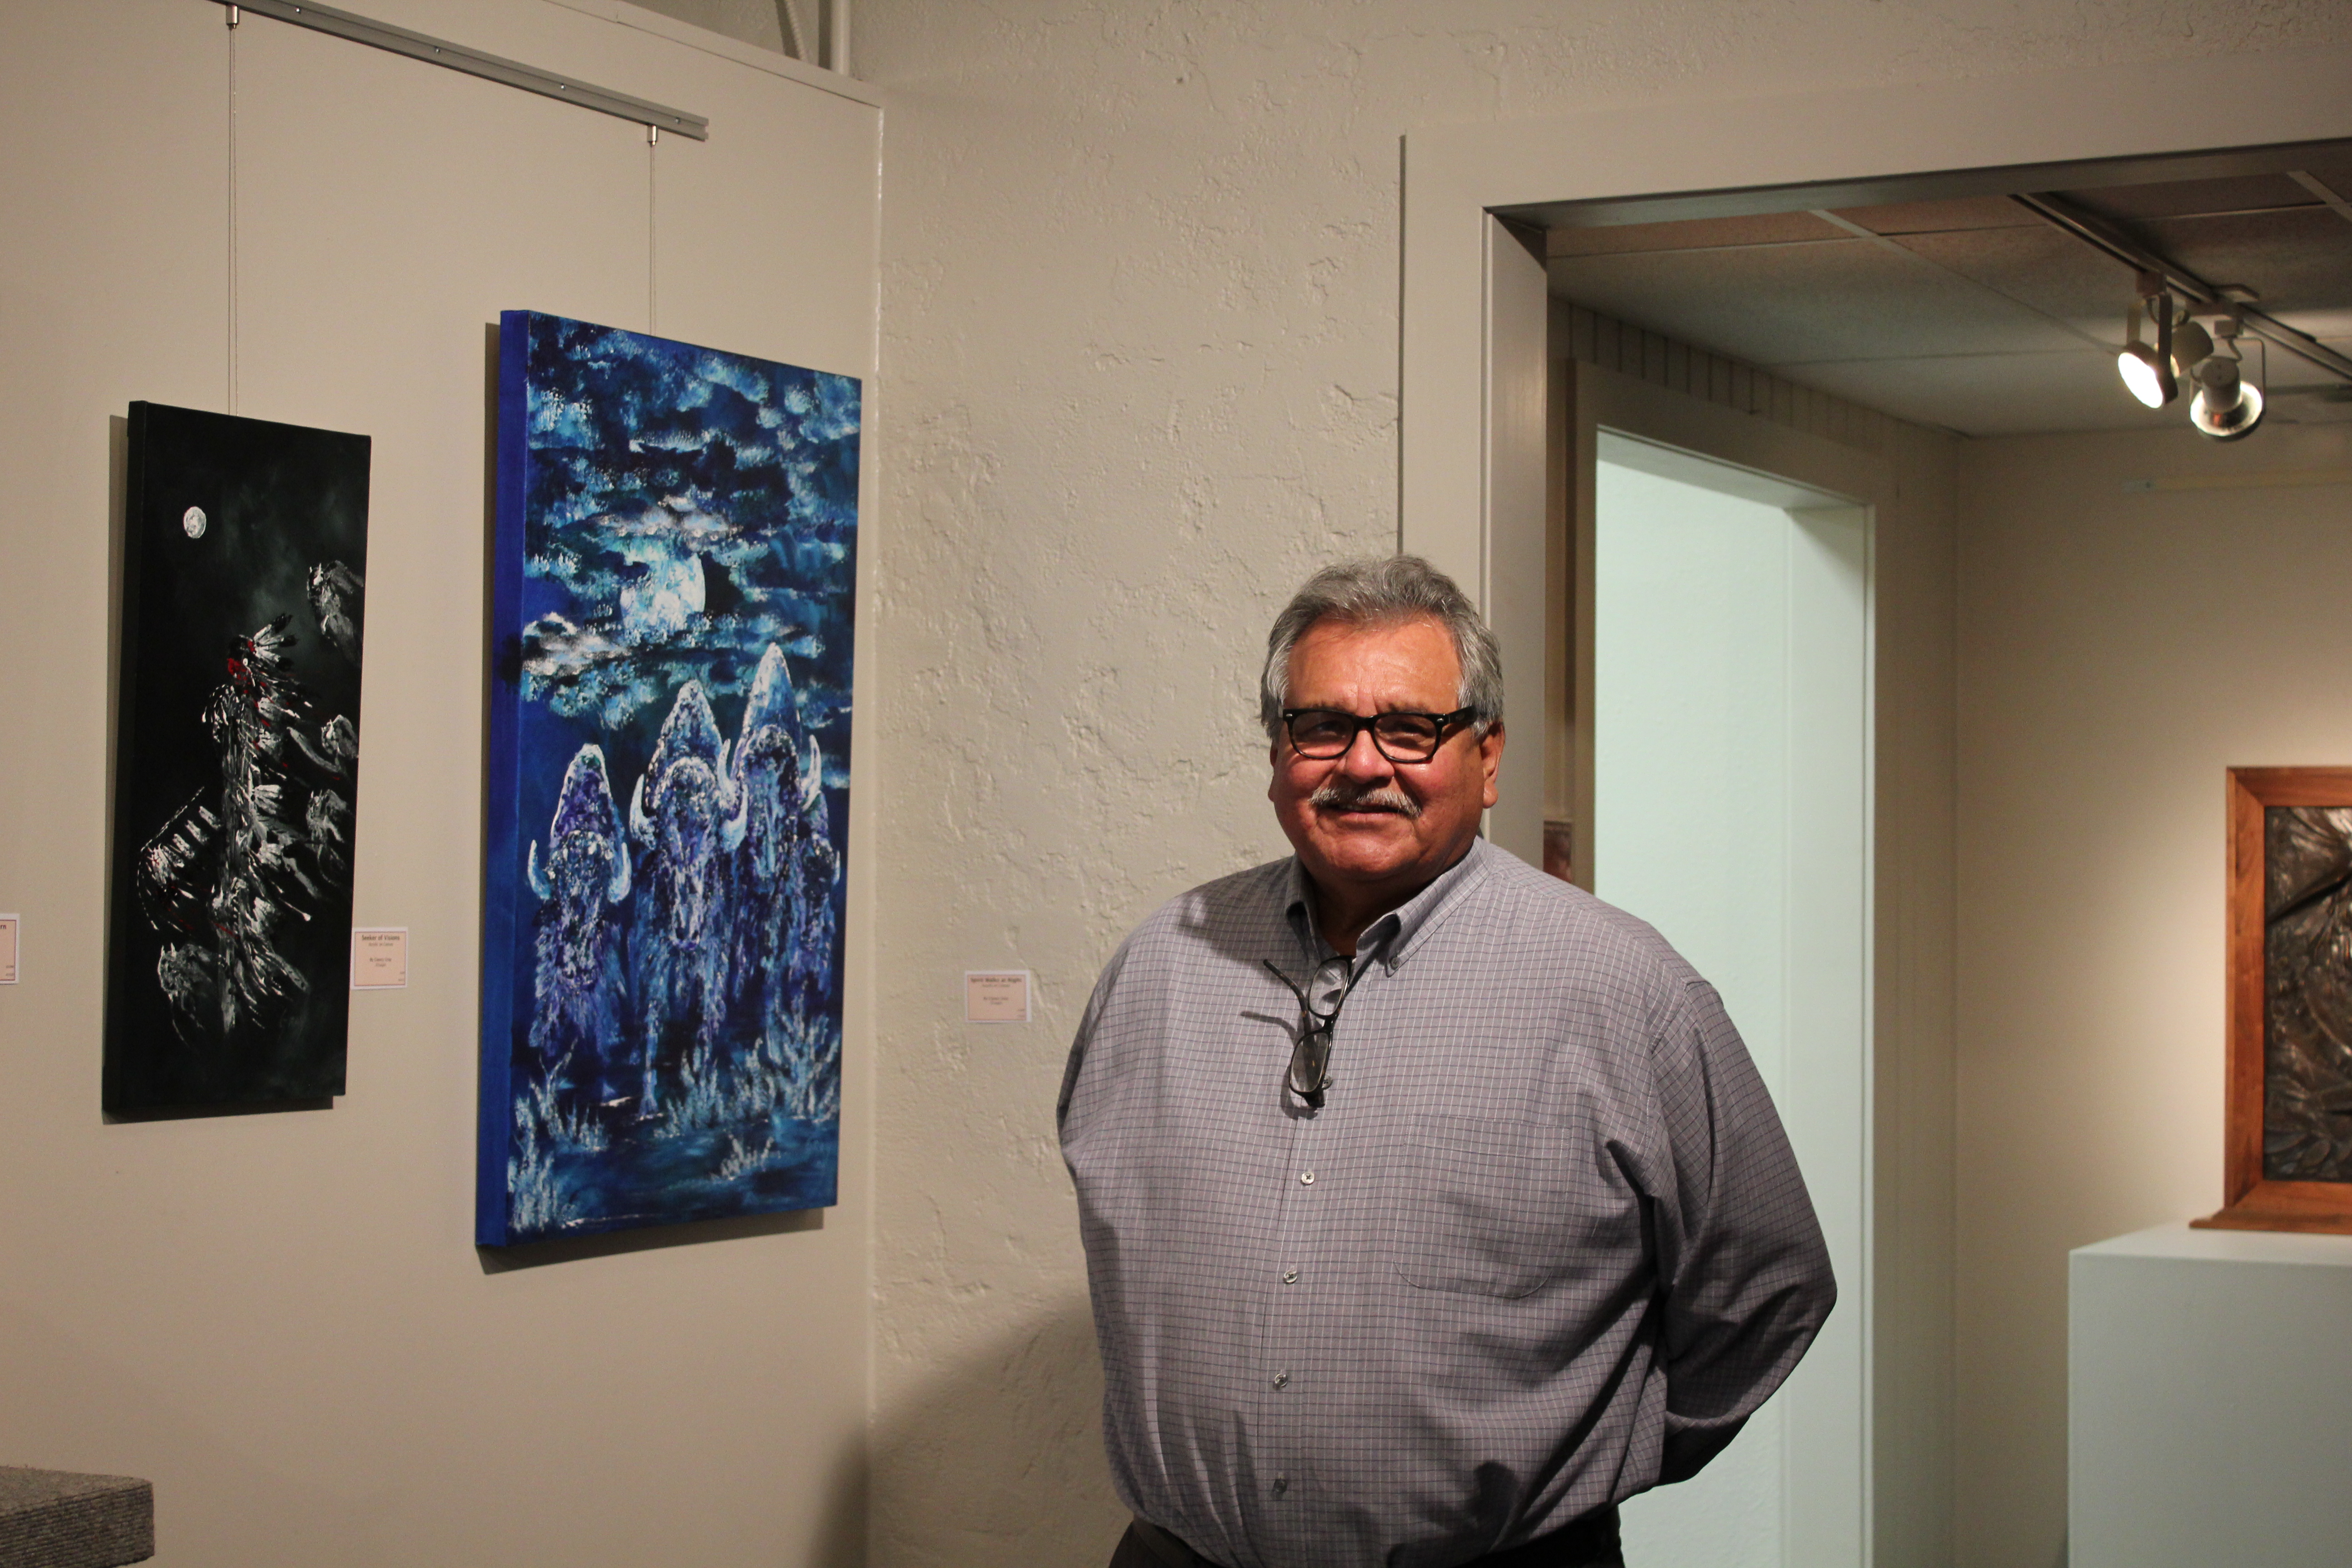 Osage artist featured in Red Earth exhibit in Oklahoma City